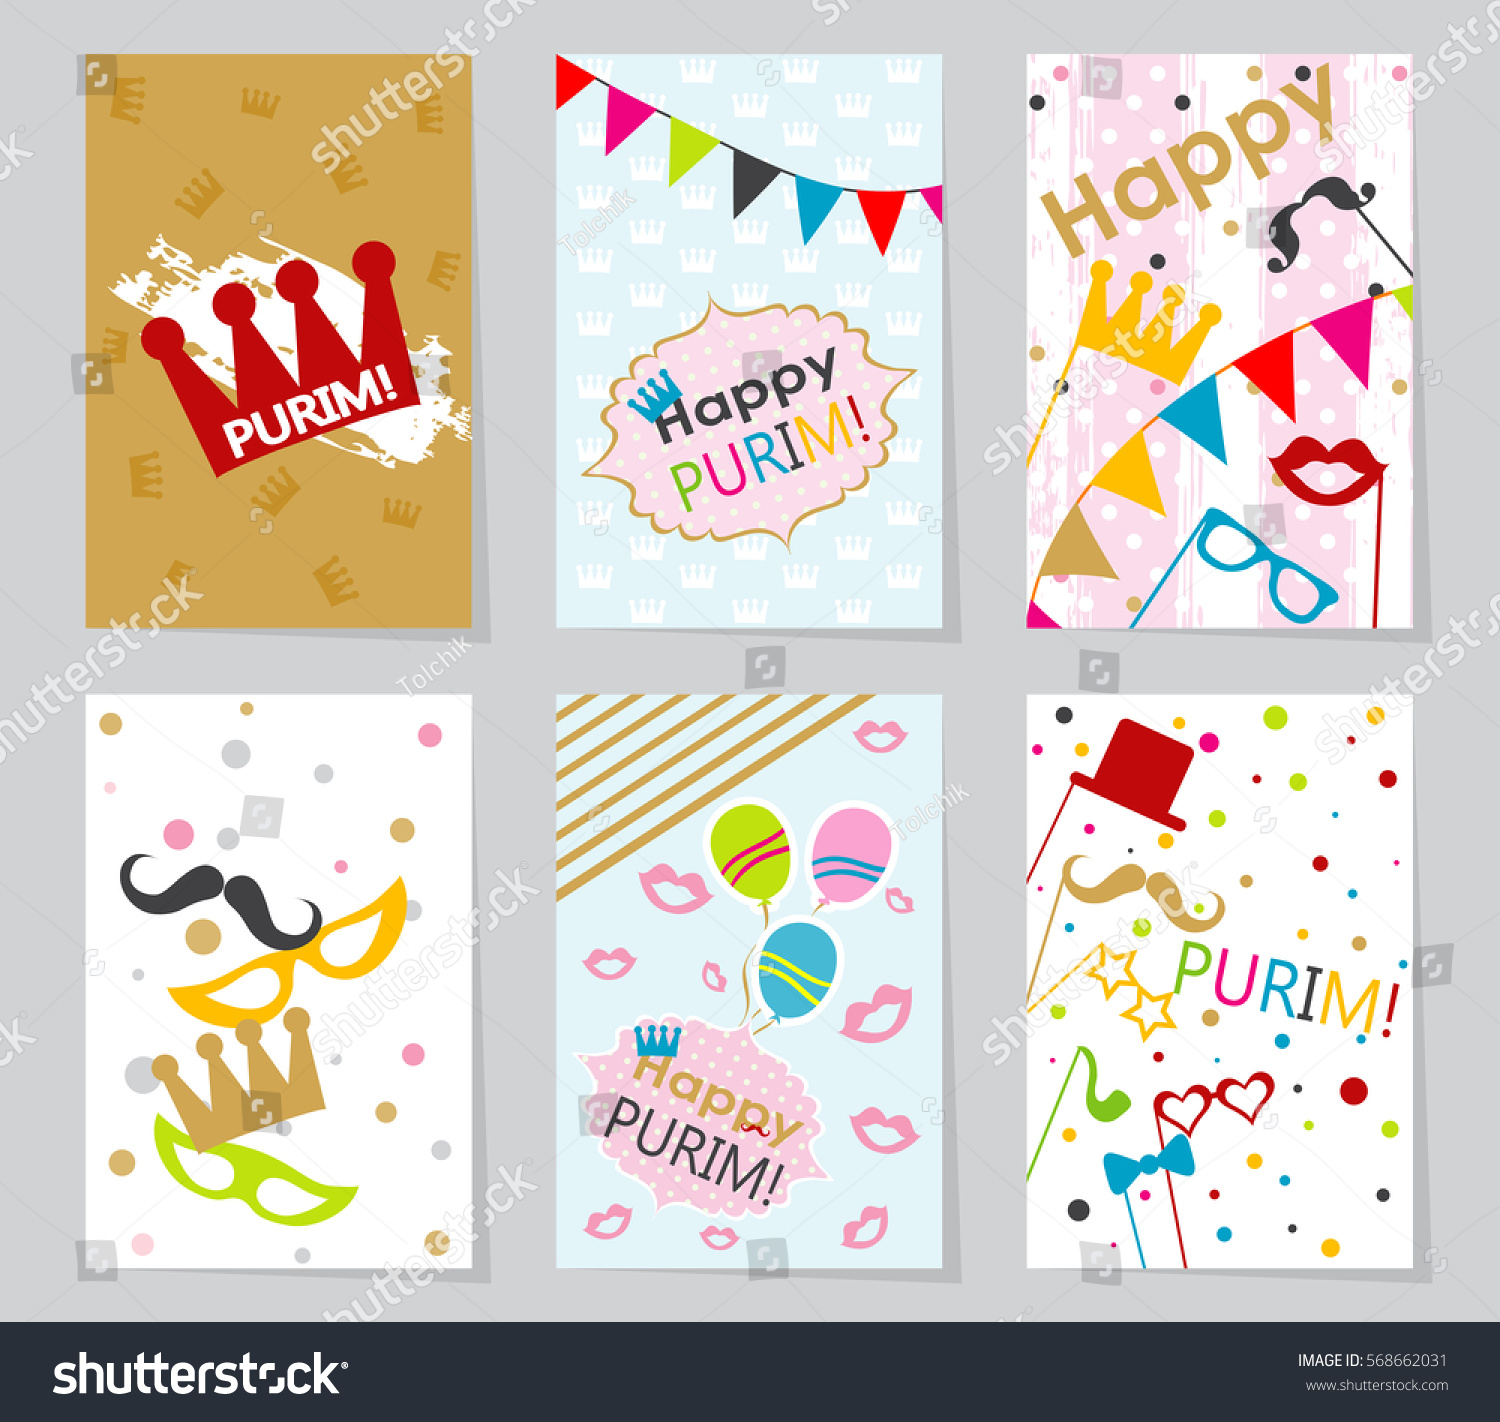 Template jewish holiday purim greeting card stock vector 568662031 template jewish holiday purim greeting card stock vector 568662031 shutterstock m4hsunfo Image collections